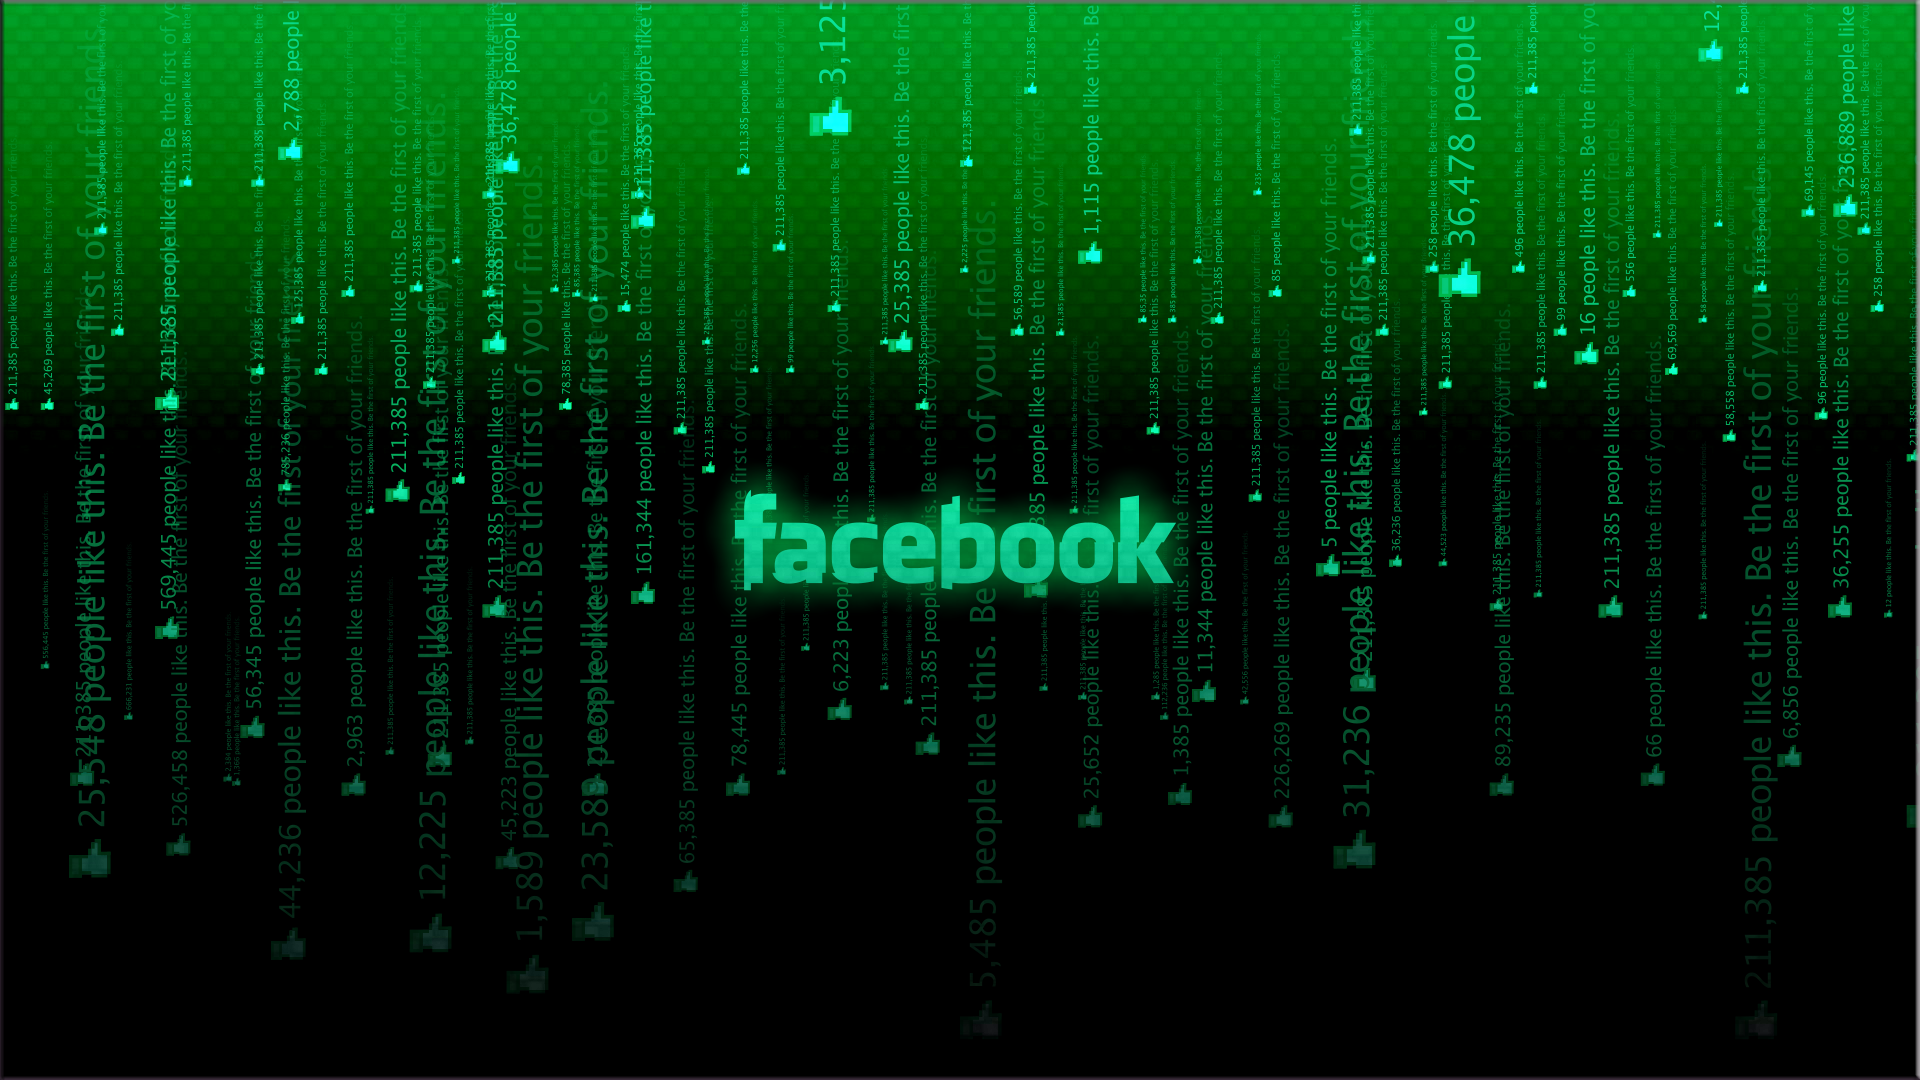 Technology - Facebook  Wallpaper